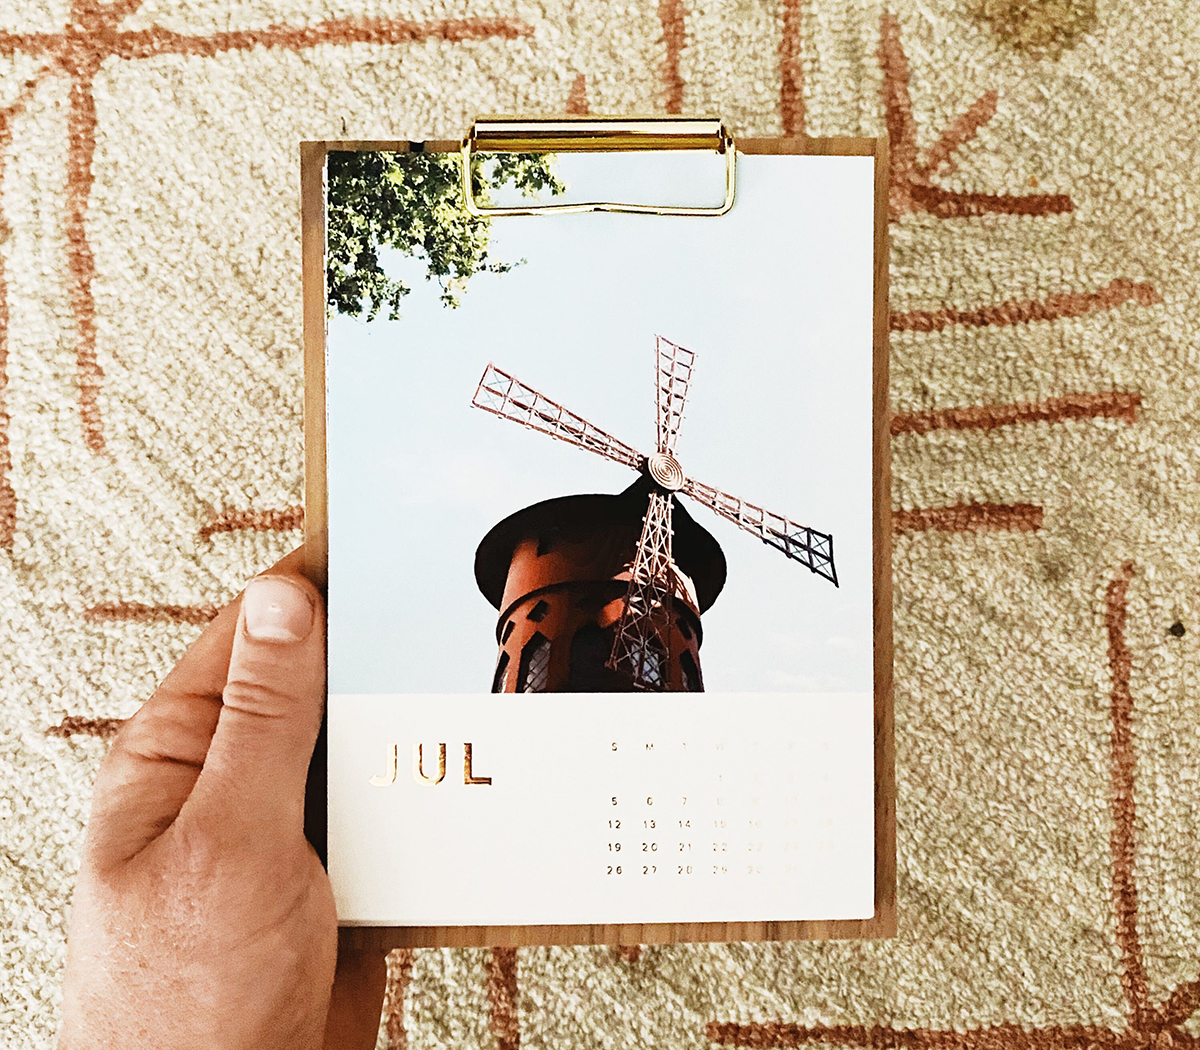 Photo by @b_brynestad of Artifact Uprising Walnut Desktop Calendar featuring photo of old time mill